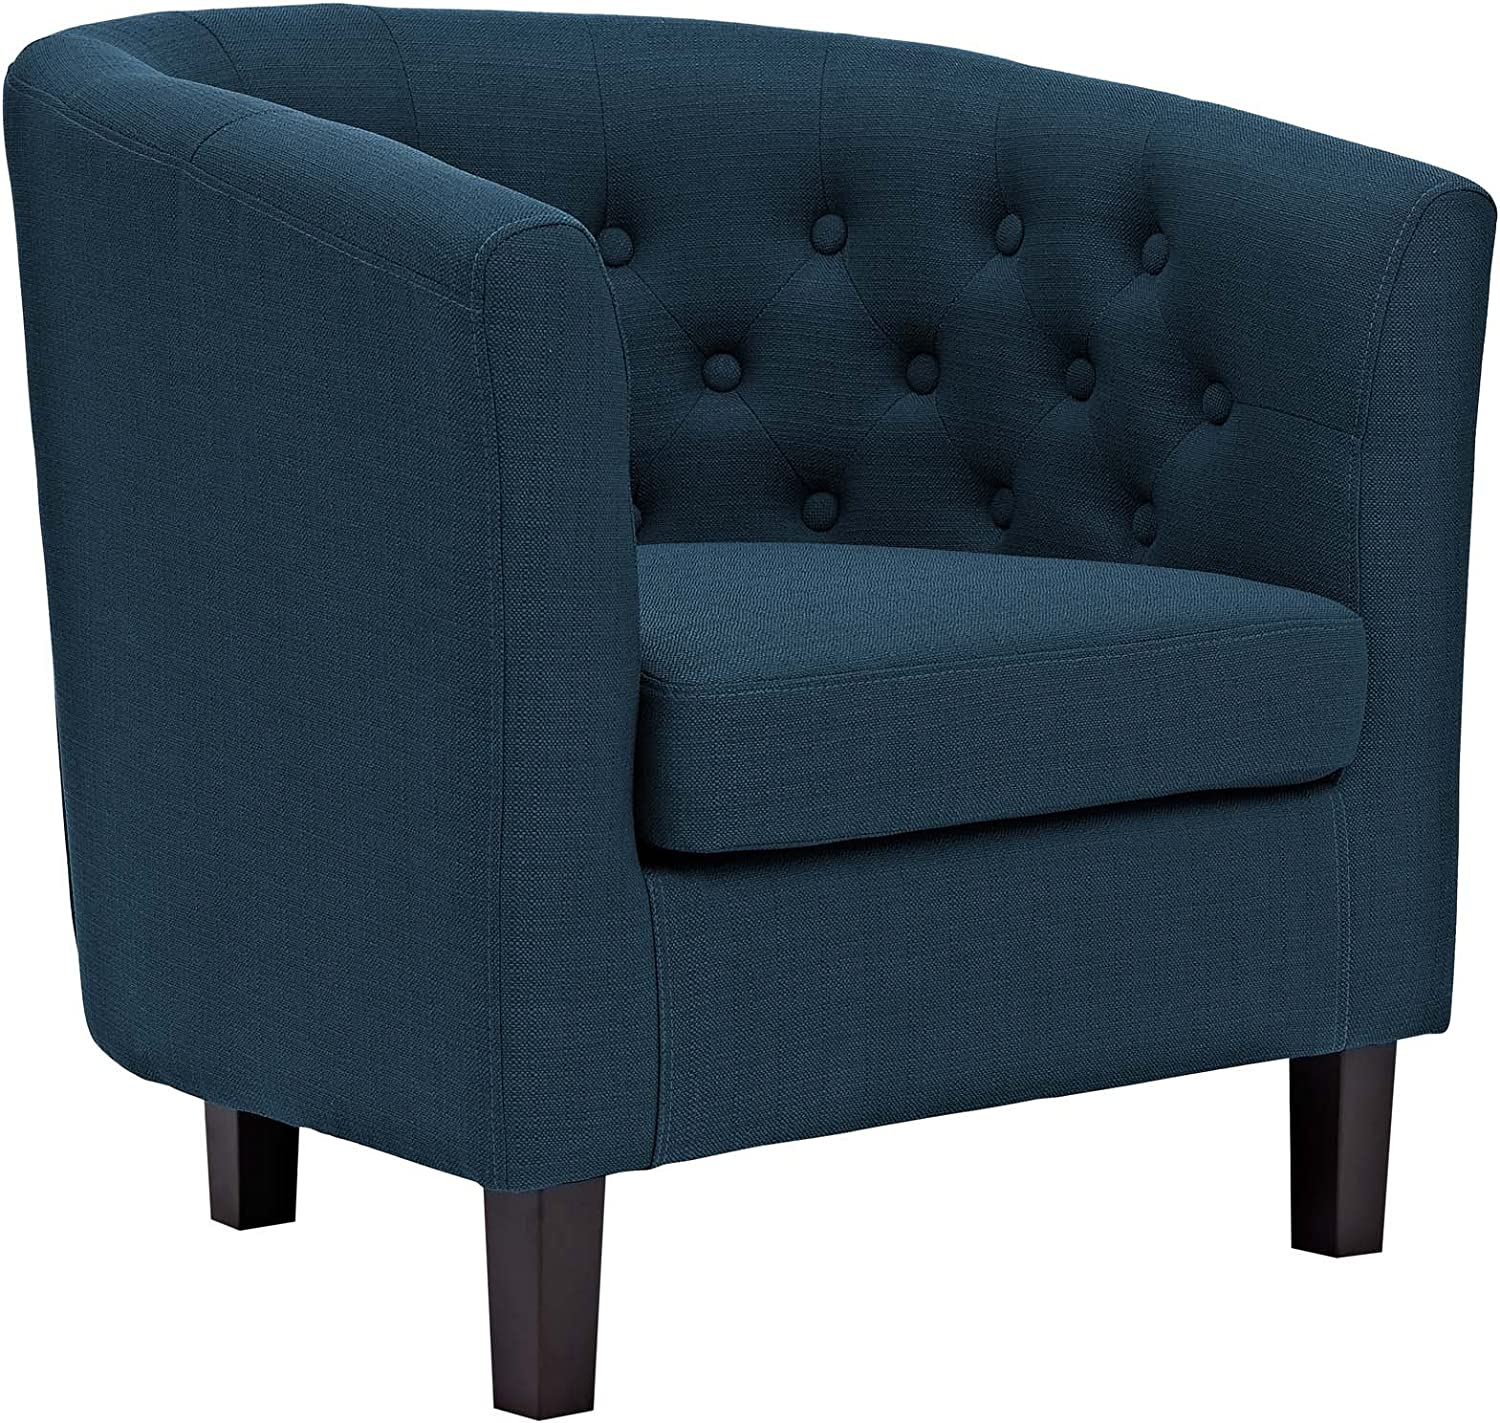 Modway Prospect Upholstered Fabric Contemporary Modern Accent Arm Chair in Azure